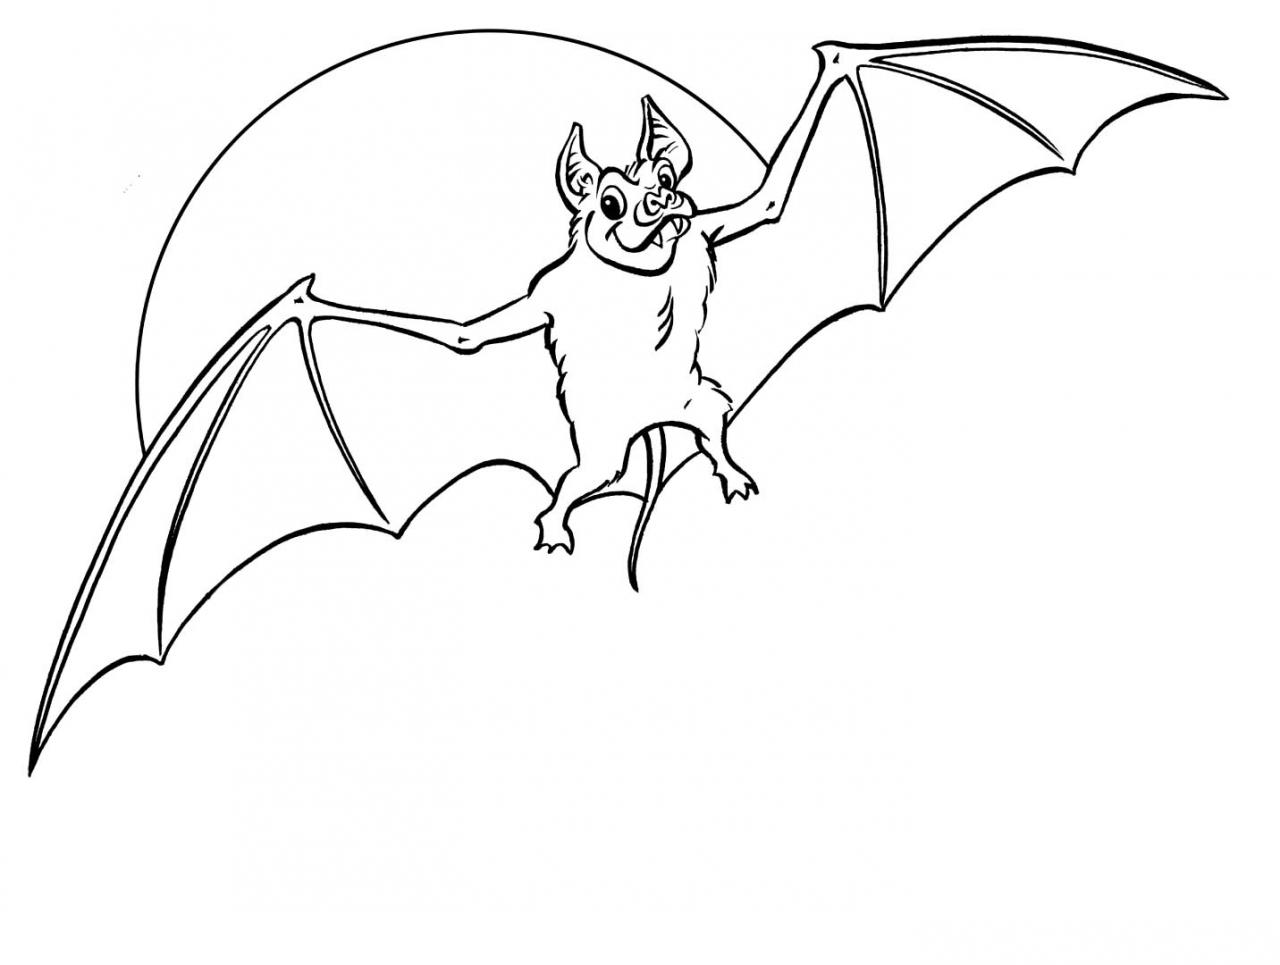 halloween vampire bat coloring pages | Halloween Bats Drawing at GetDrawings.com | Free for ...